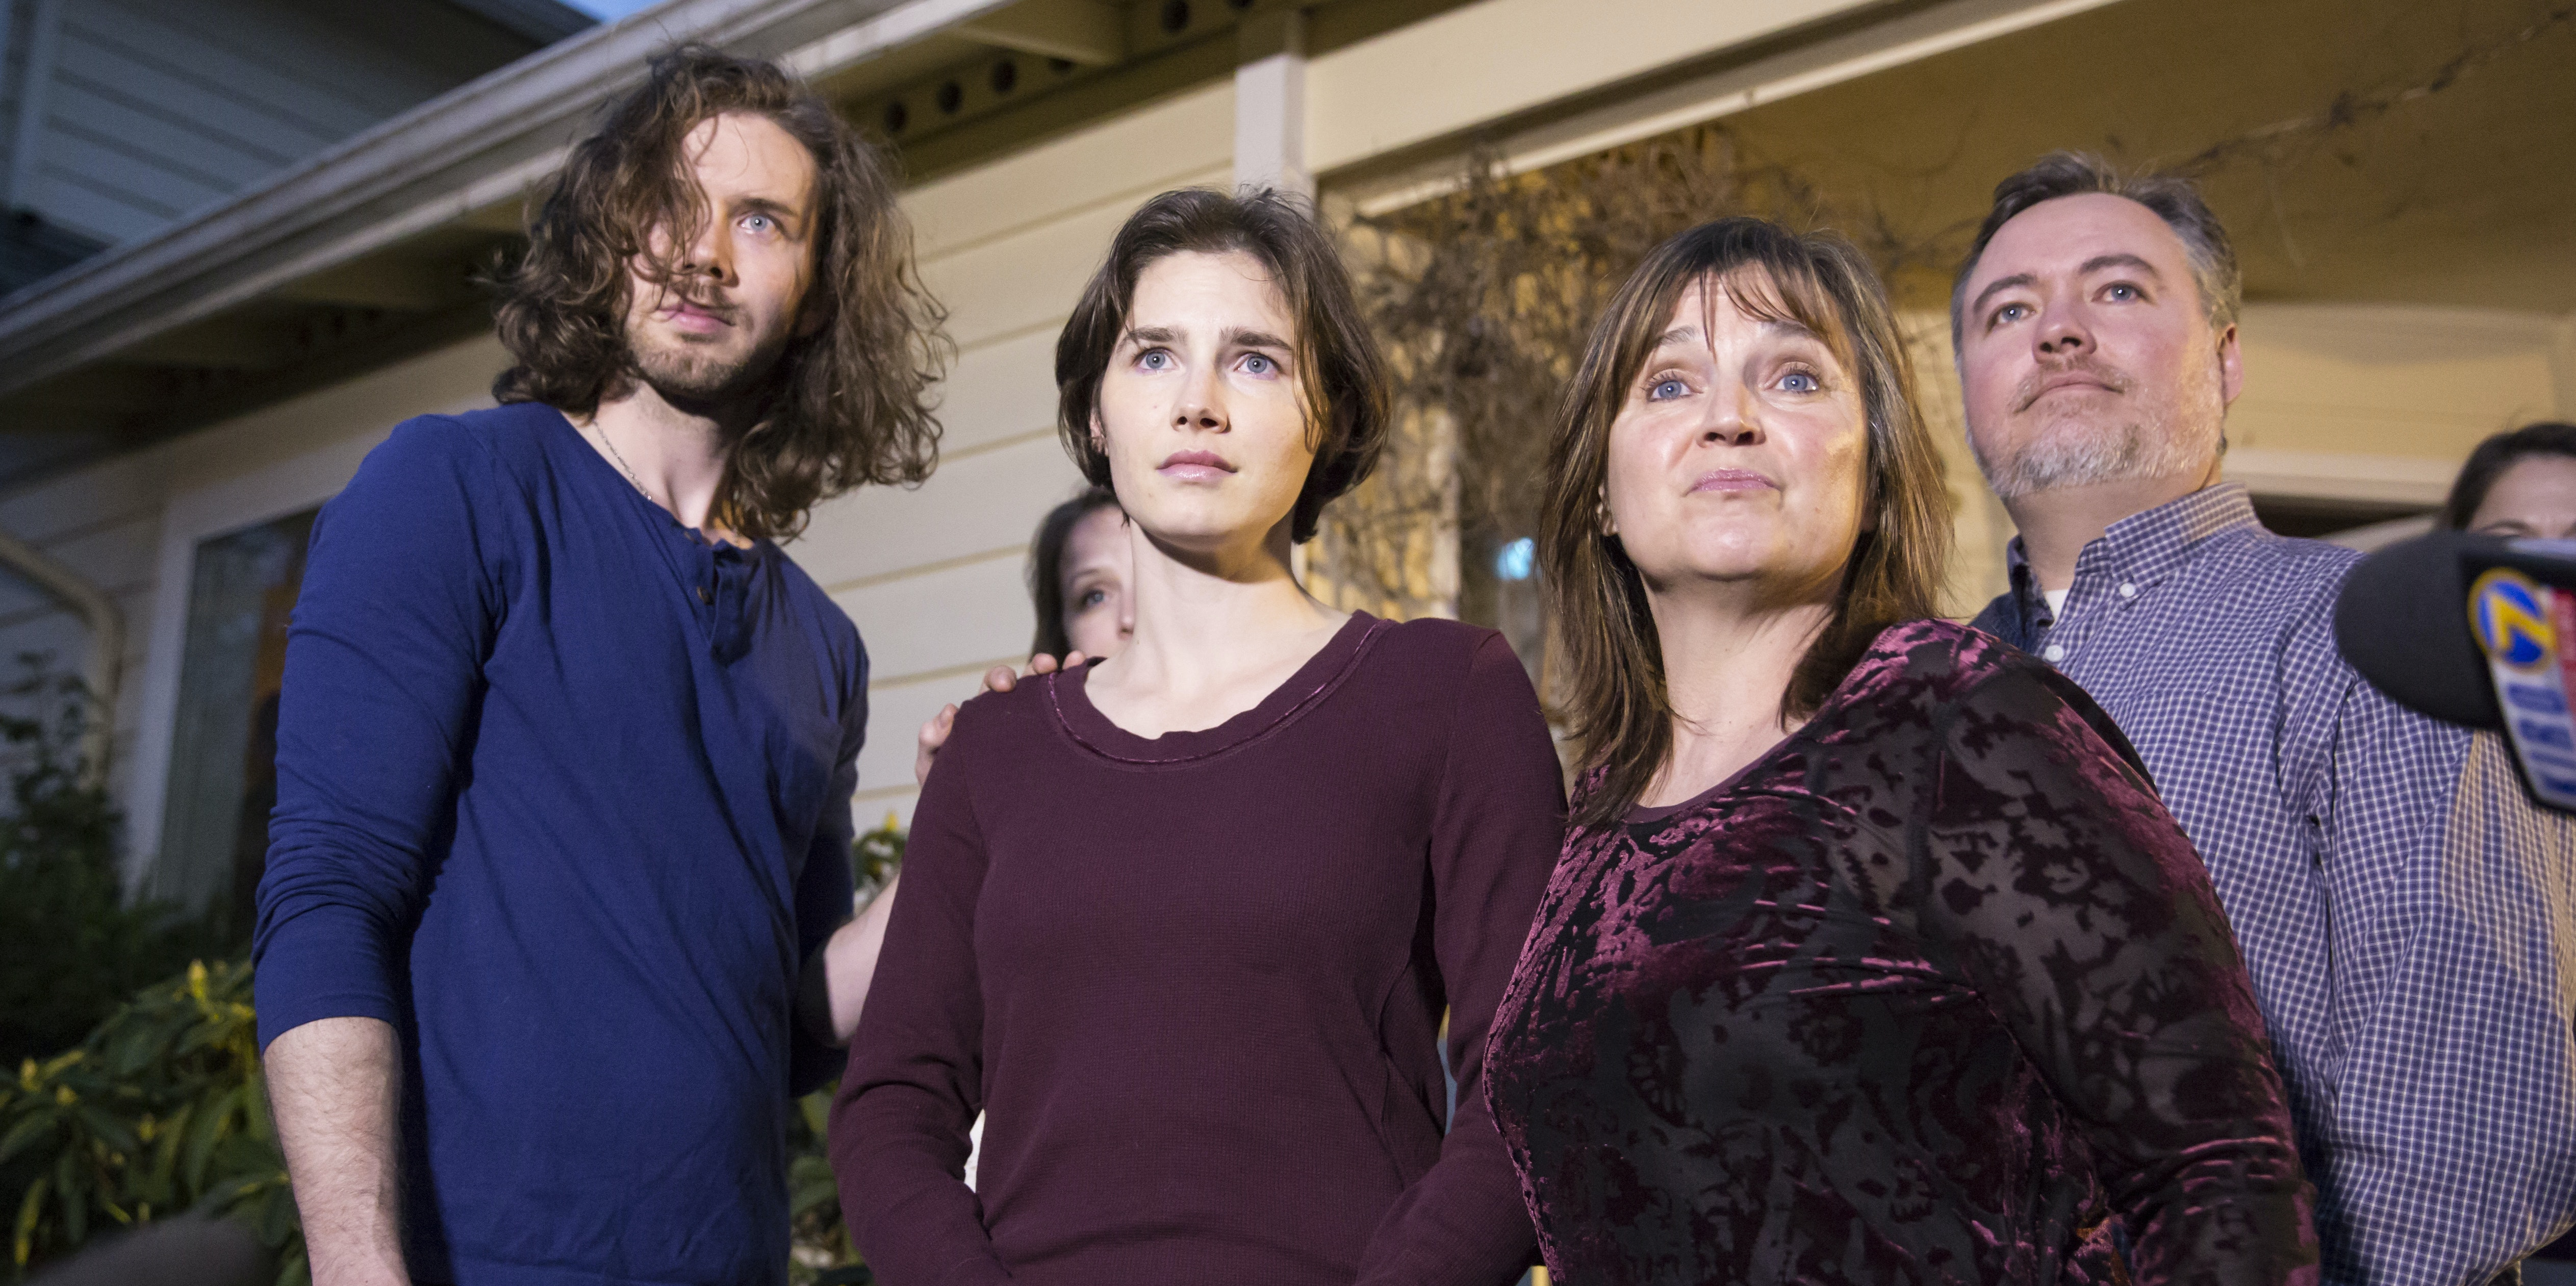 Amanda Knox is one of the best new true crime documentaries on Netflix.